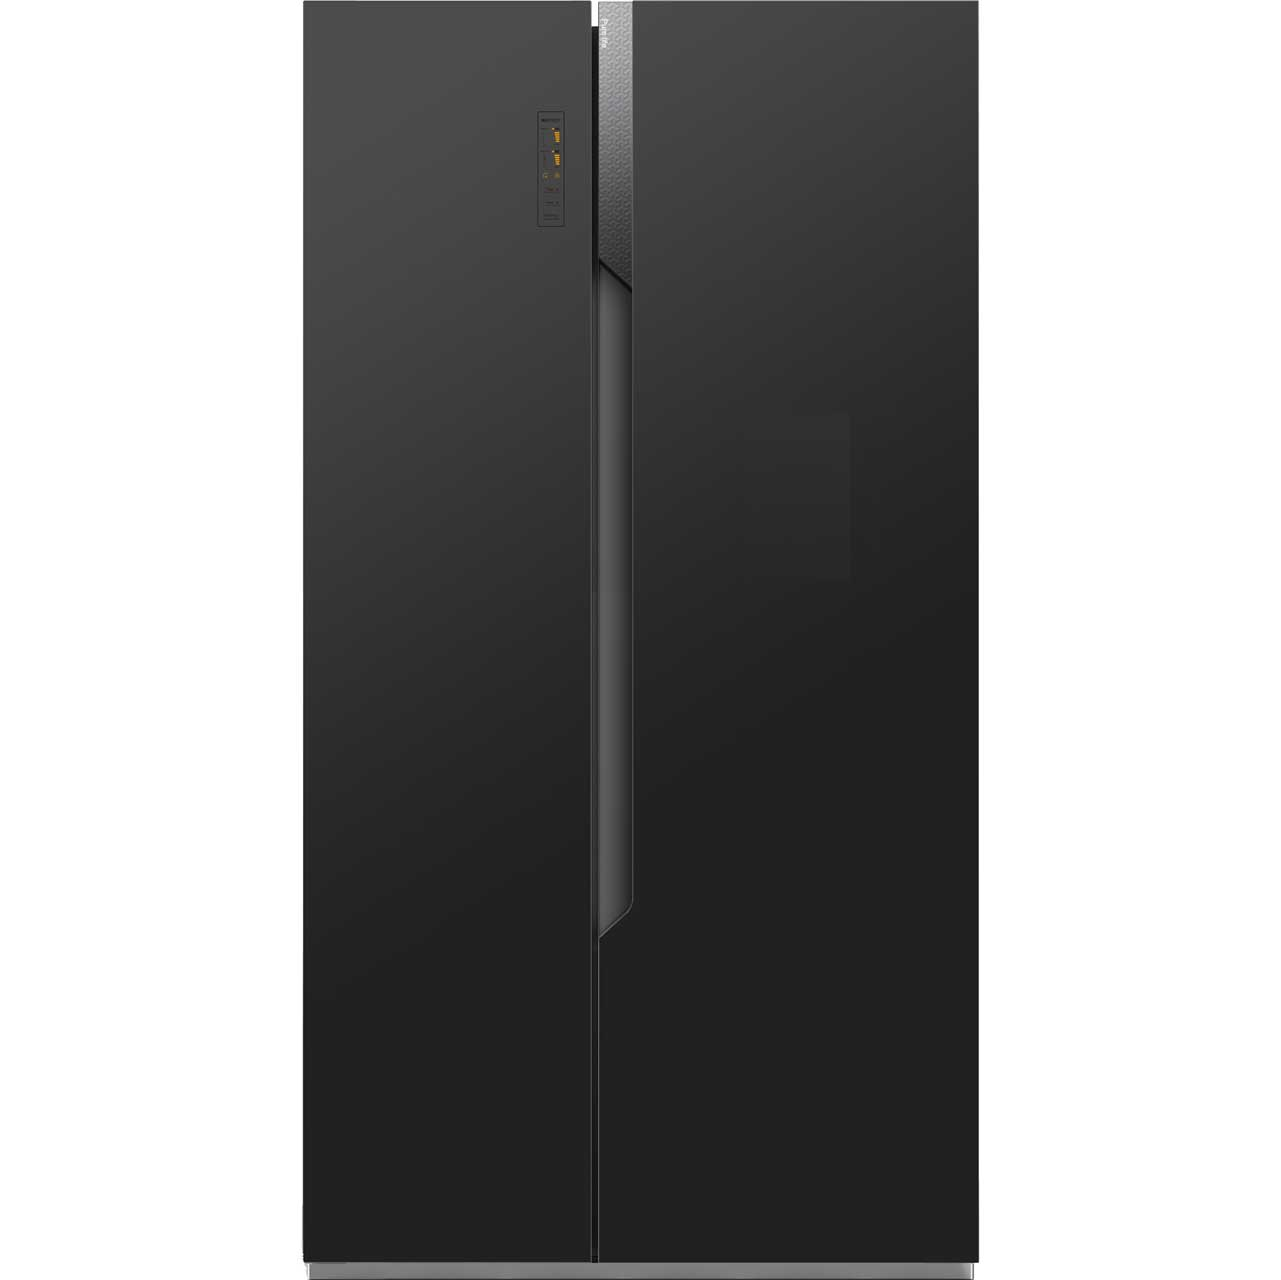 Fridgemaster MS91518FFB Free Standing American Fridge Freezer in Black